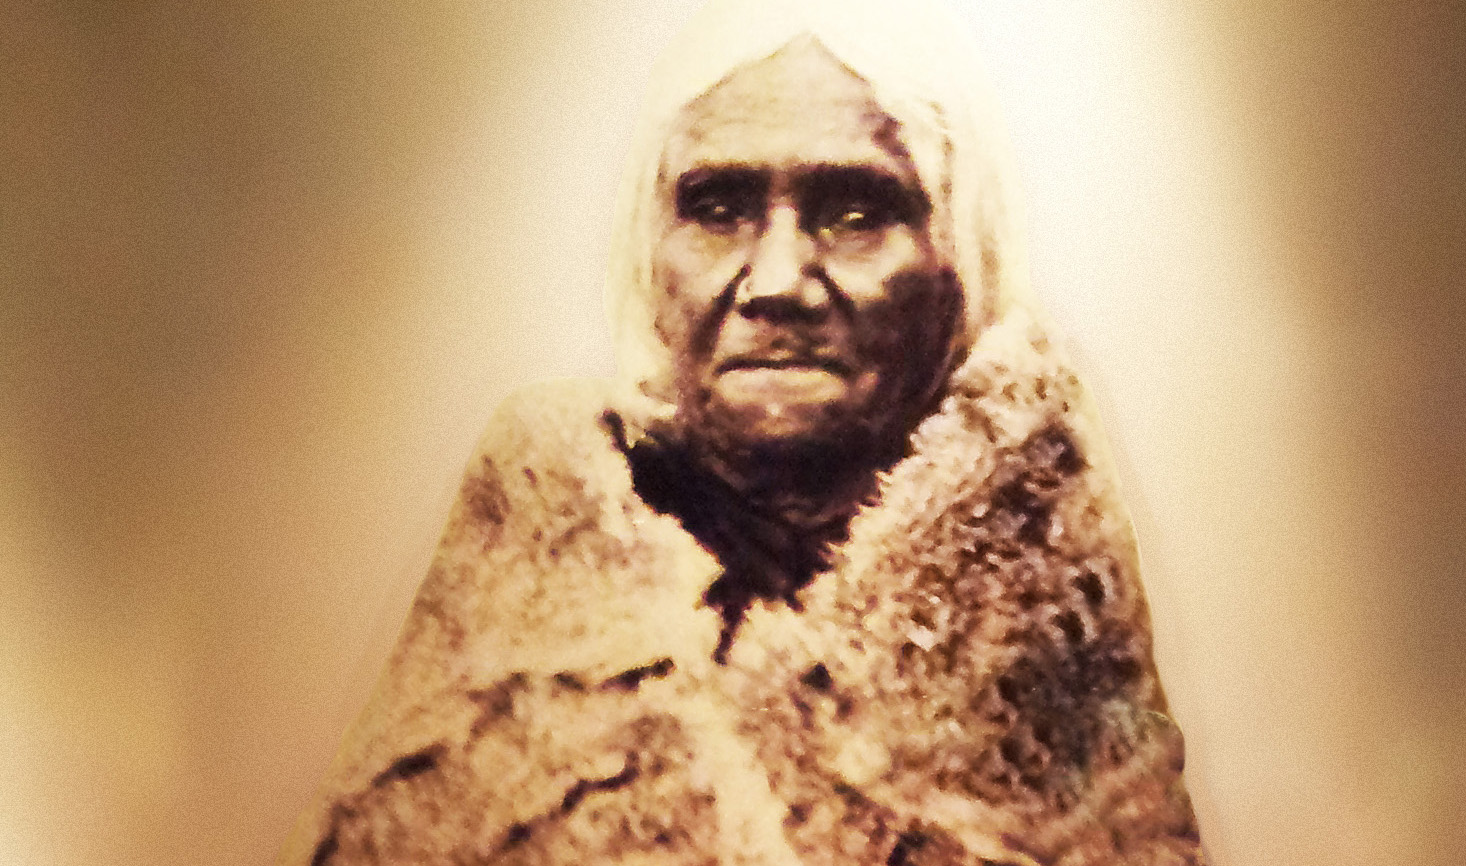 """Ivaritji - Ivaritji was a very important person. She is one of only two key Kaurna informants. She named Tandanya and Tamdanyangga and the post office. She identified the lake in the Botanic Gardens as an important site. She provided very important information to anthropologists about Kaurna ways and cultures. She was a truly independent woman. She wanted to be economically self-sufficient. She was a master weaver. In terms of her loving her neighbours, she was childless but she was known as Tuku Ngangki, which means """"mother"""" to many. There was talk of her as this little dark, snow-haired woman, carrying around her reeds to weave her mats and always being there to help deliver babies.Ivaritji was born in Port Adelaide, probably in the mid 1840s. Her Kaurna name means a """"gentle, misty rain. She is regarded as the last surviving person of full Kaurna descent. Her mother was Tankaira or """"Charlotte"""" and her father was known to the early settlers as """"Rodney: or """"King Rodney"""". He was one of the leading men or 'chiefs' of the Adelaide tribe.Nothing is known of Ivaritji's early life. She is first mentioned in historical documents when she lived in Clarendon in the 1850s and 1860s. Ivaritiji stated in a 1927 newspaper interview that she and her family, along with the rest of the Kaurna people, moved to the Clarendon district when Adelaide became too populated. According to the newspaper interview, Ivaritji said that both her parents died within a short space of time while they were living in Clarendon and she was then adopted by the Daily family. Thomas Daily was the local schoolmaster and also was in charge of distributing rations, including flour, rice, sugar, tea, and tobacco to aged, infirmed or destitute Aborigines. It is assumed that Ivaritji was adopted by the Dailys in the early 1860s and then stayed with them for a few years. During that time she learned to read and write. She then rejoined the Kaurna people.She lived in Point McLeay Mission. She married Charles Sav"""